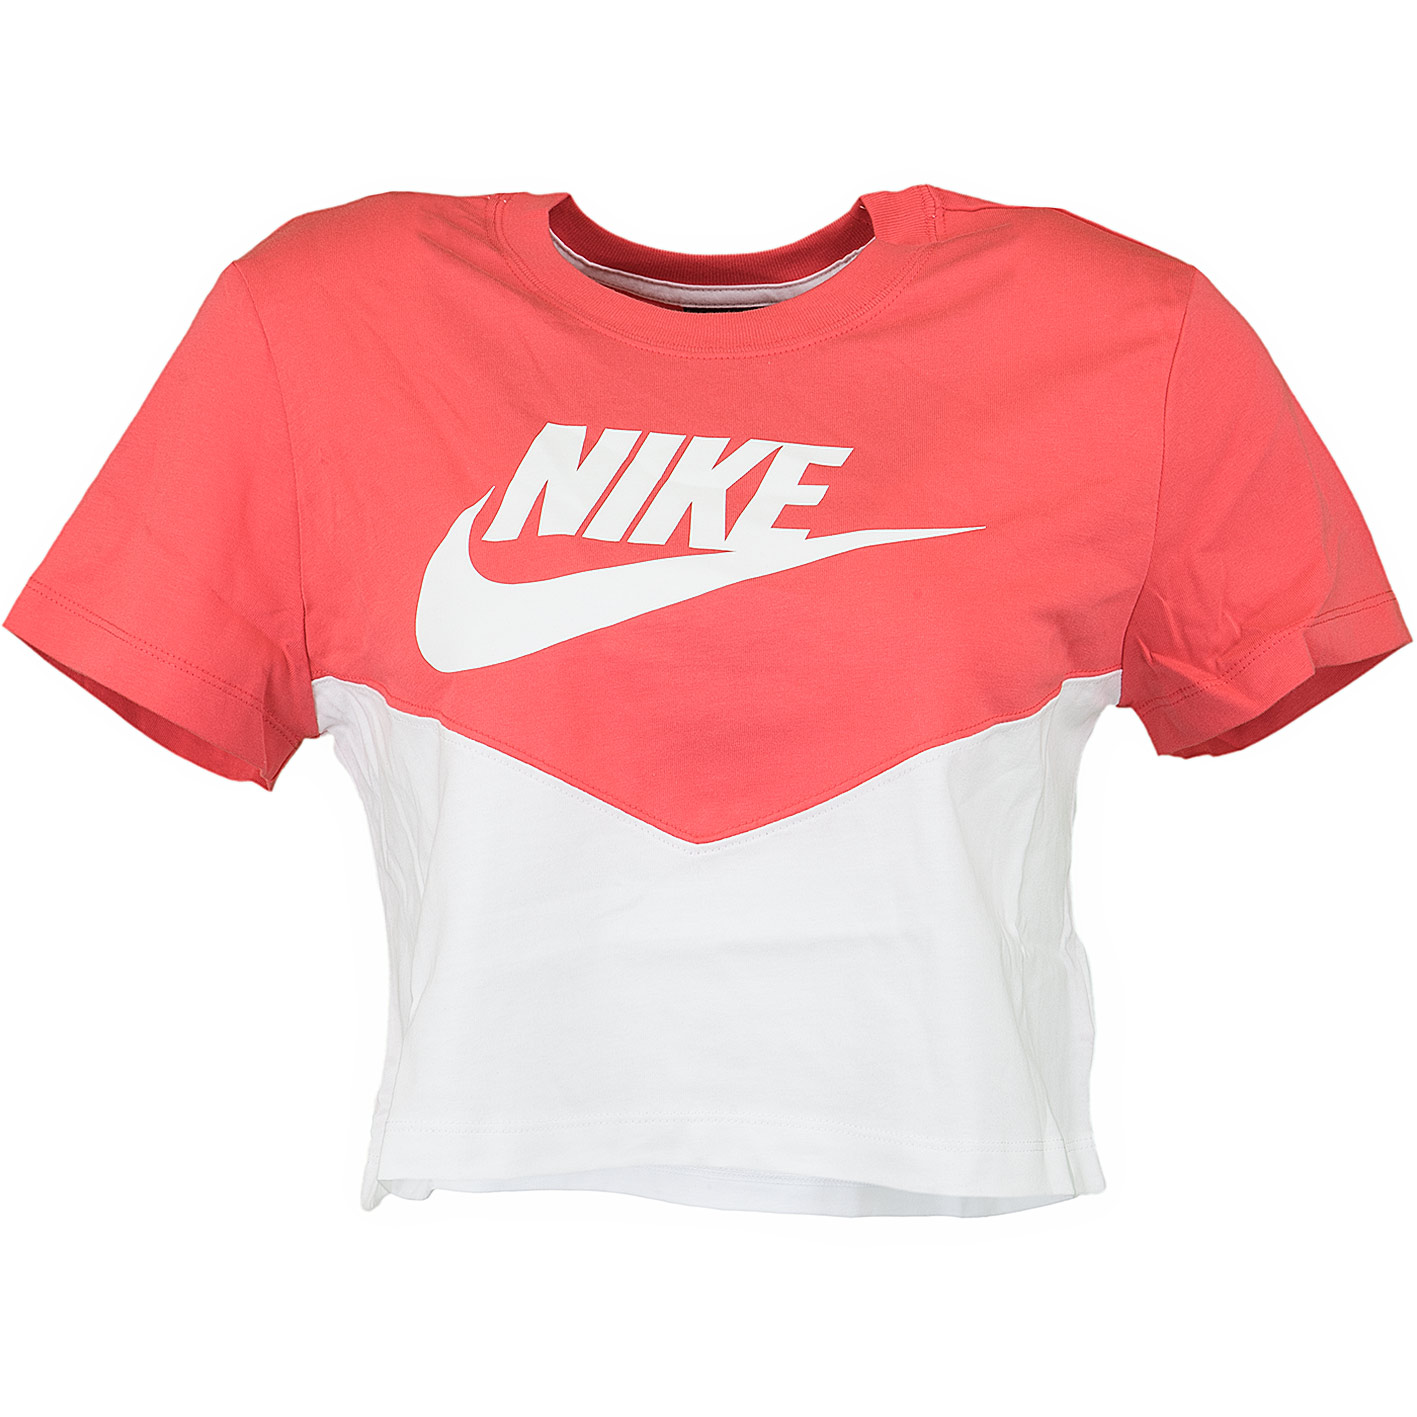 classic styles coupon code new high Nike Damen T-Shirt Heritage weiß/rot